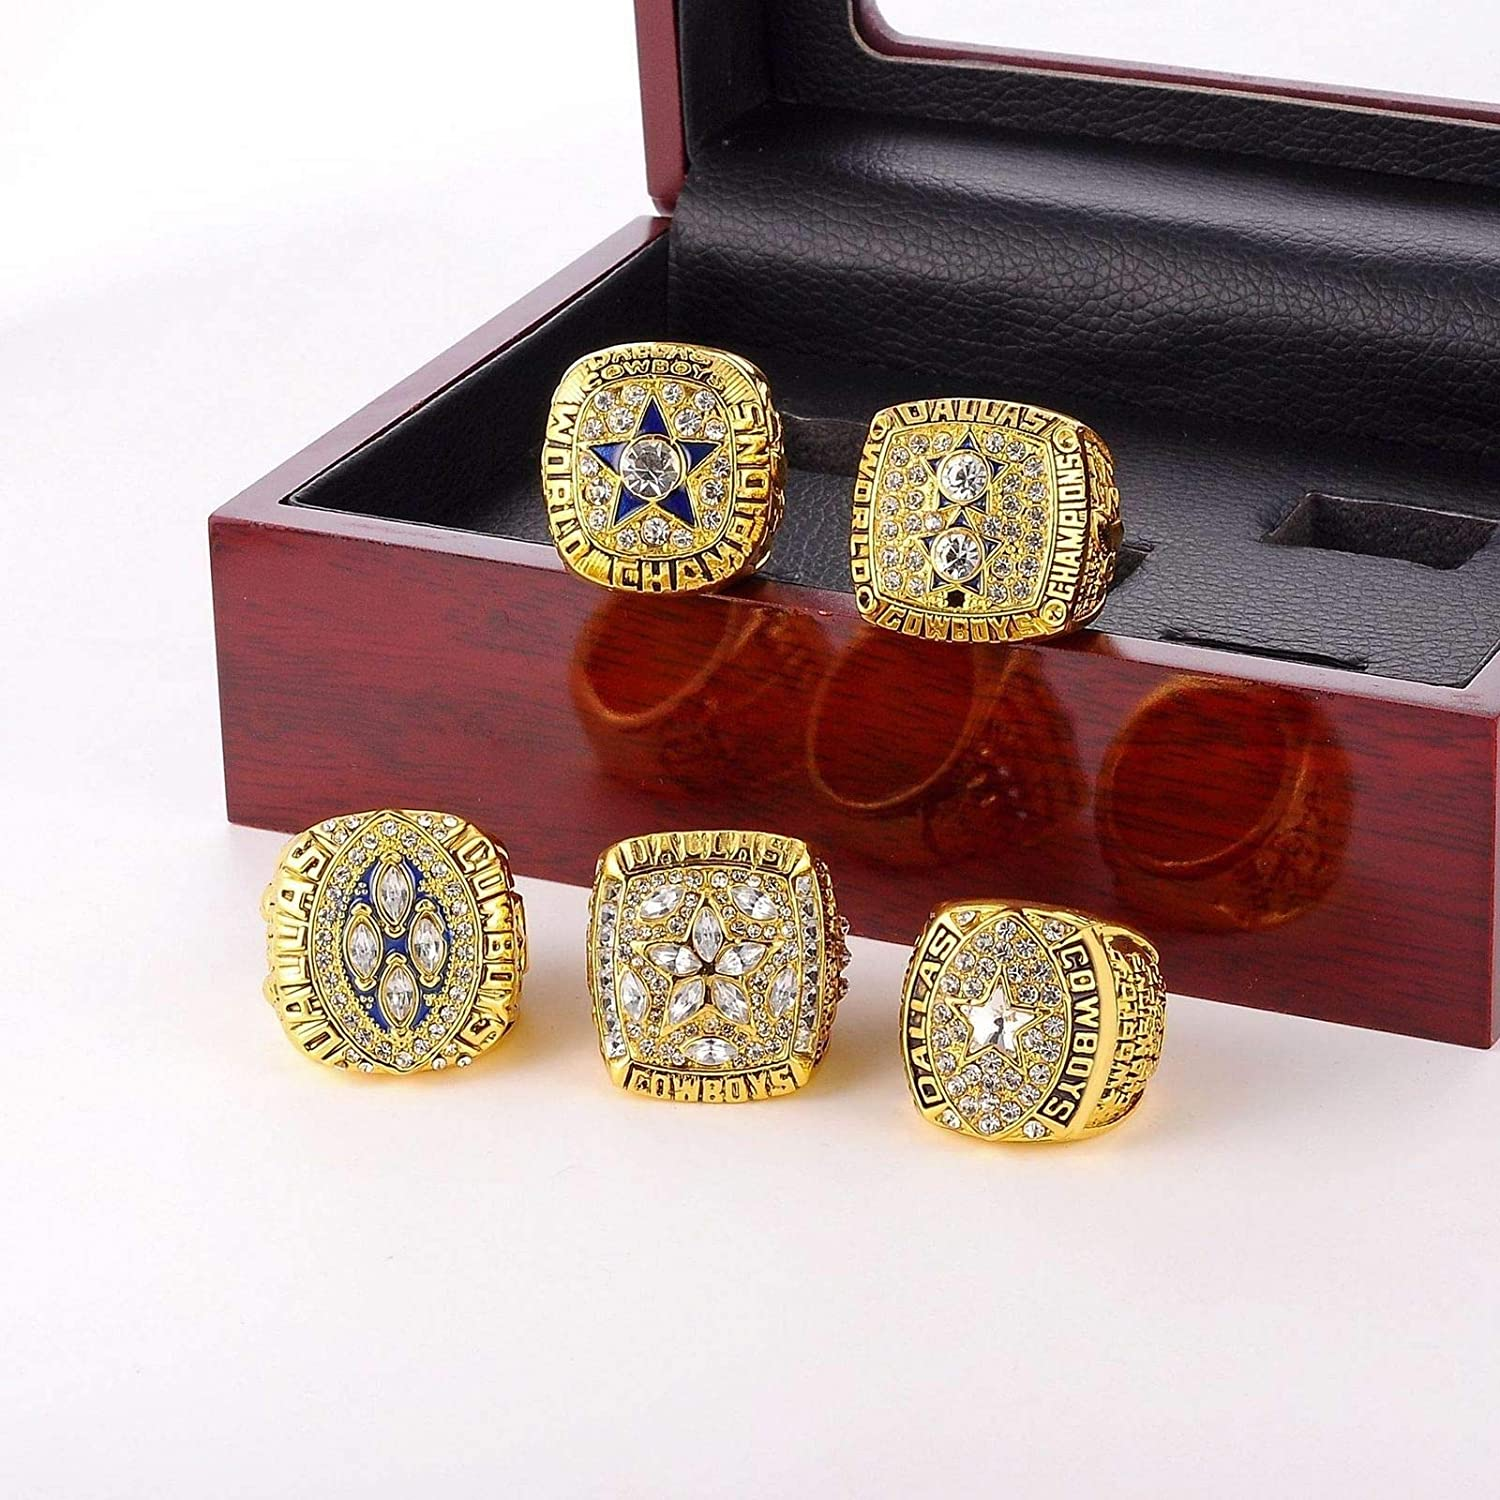 MT-Sports Dallas Cowboys Championship Ring Rings Super Bowl Gold Sliver Rings Full Set Replica Gift Collection Size 11 with Display Box